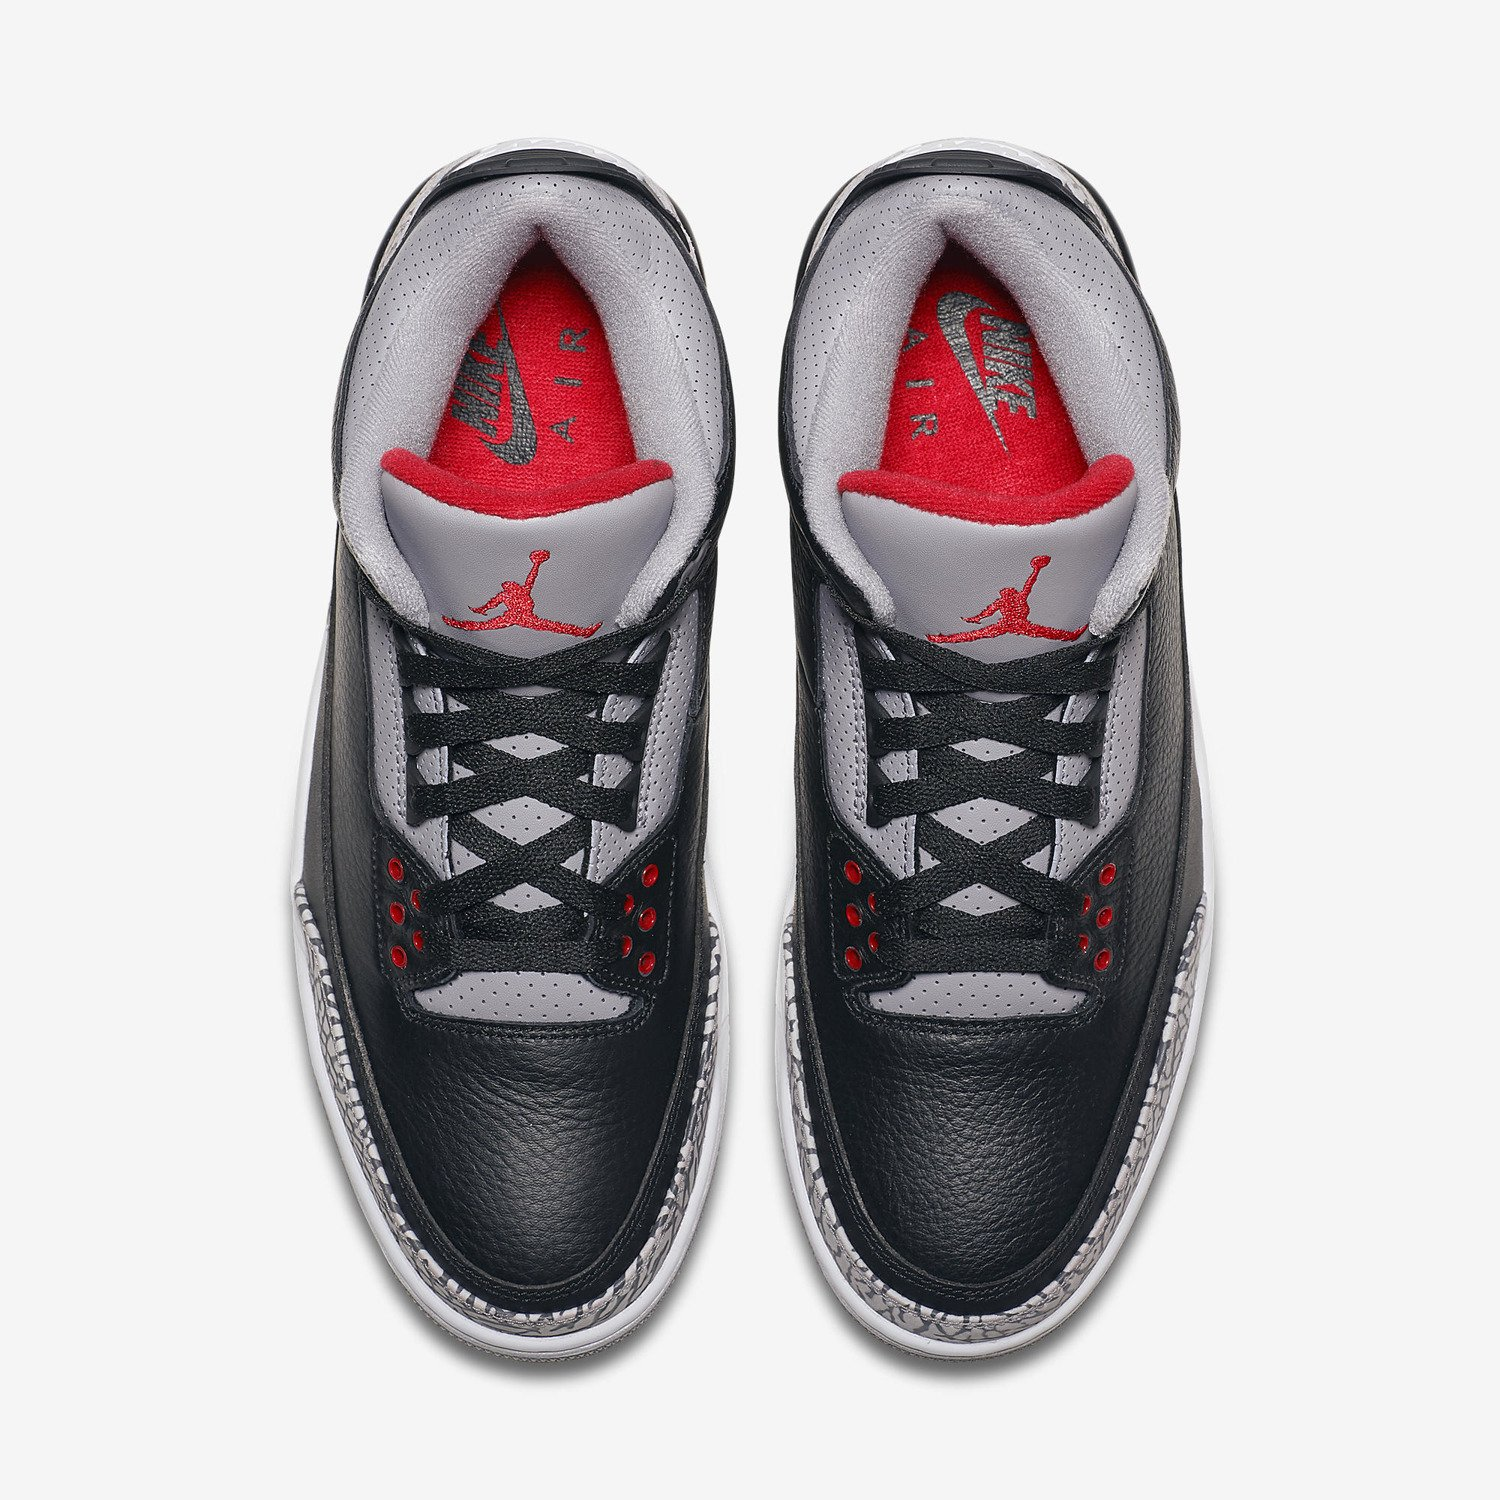 Buty męskie Air Jordan 3 Retro OG Black Cement 854262 001